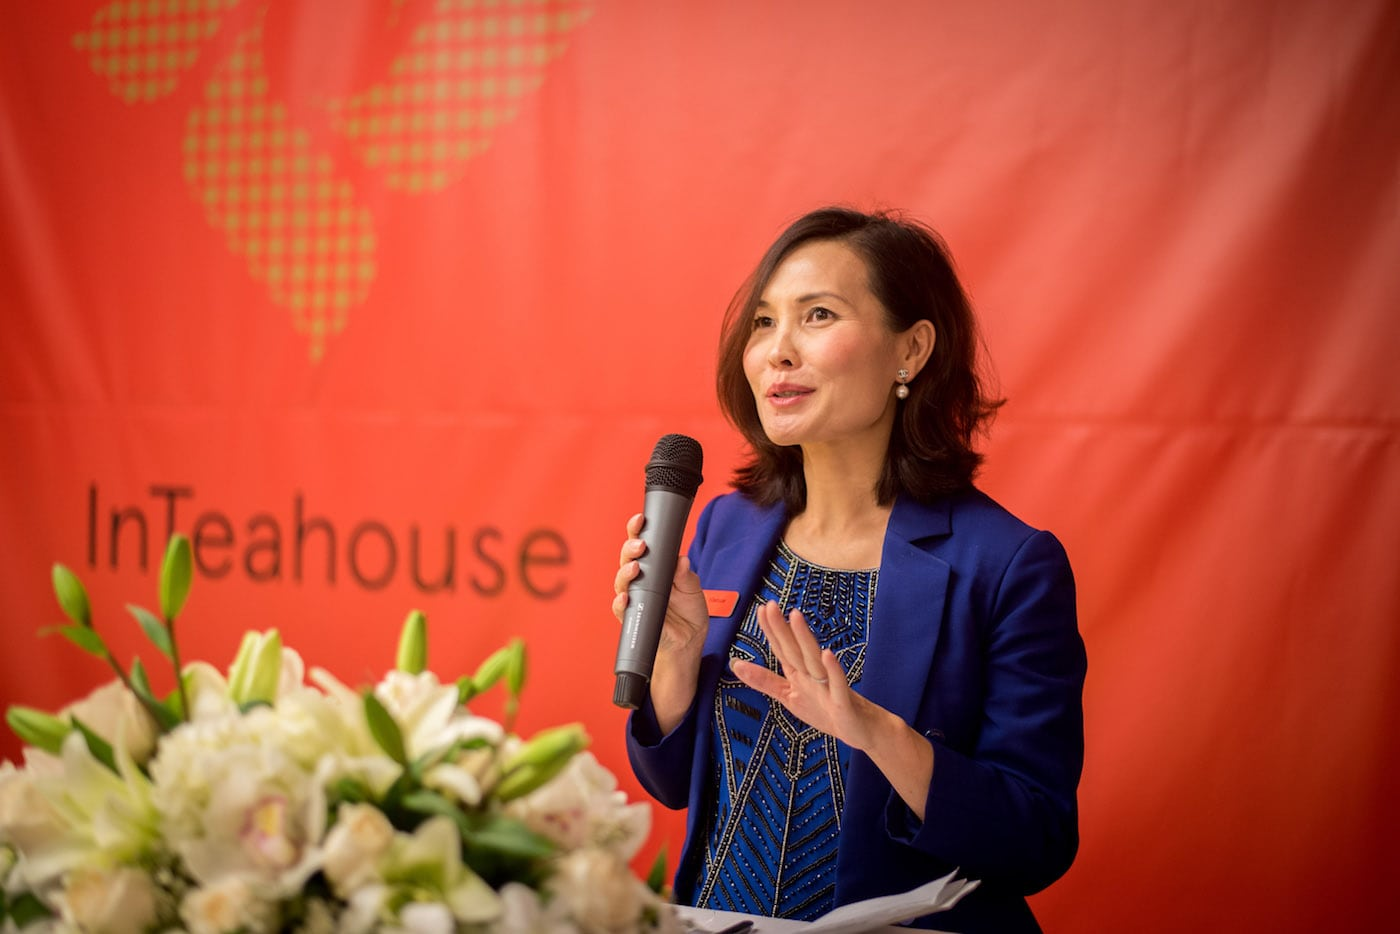 InTeahouse Accelerator Wants Startups to Think Globally, Build Locally